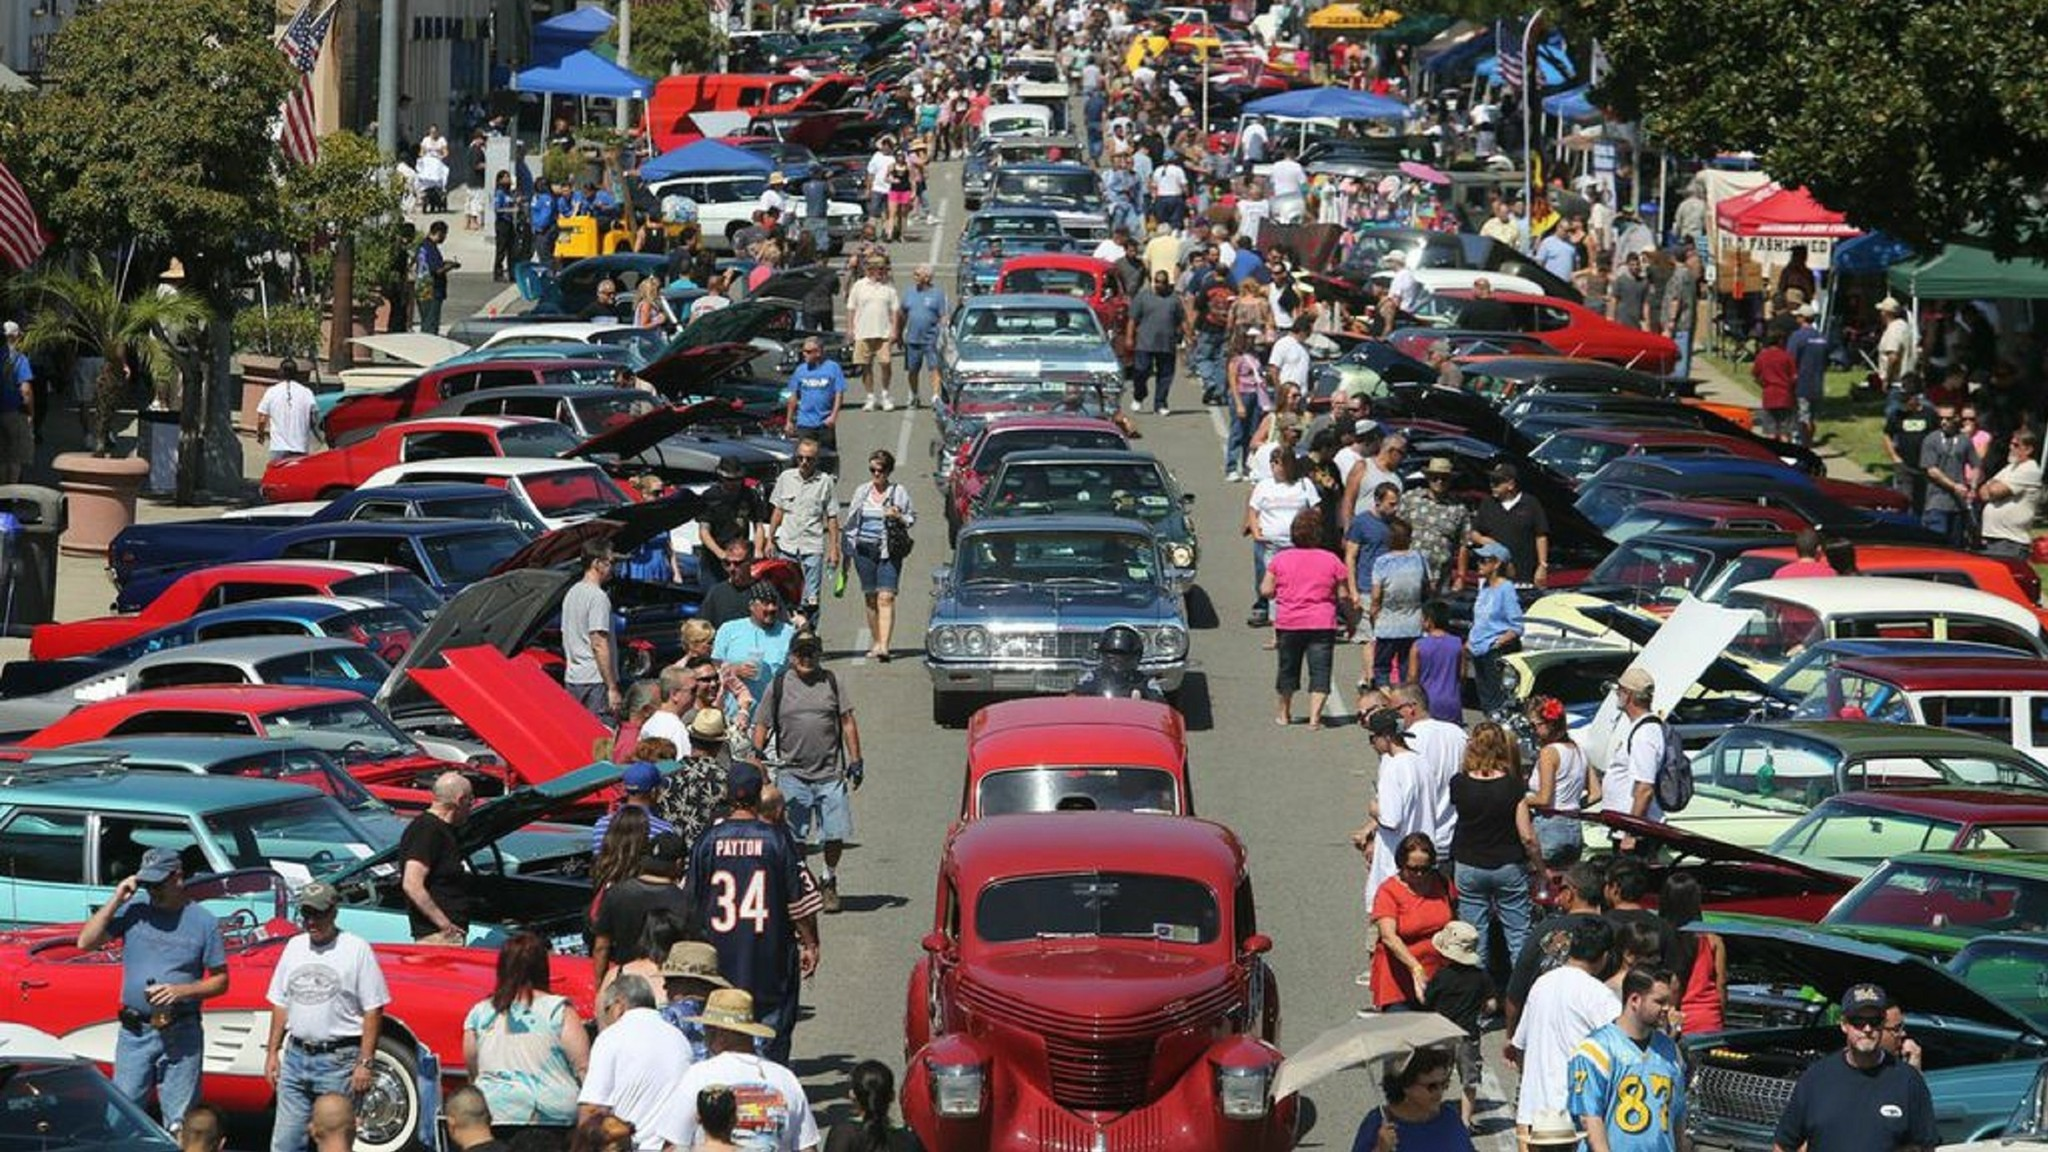 Classic Cars Rev Up For Route 66 Cruisin Reunion In